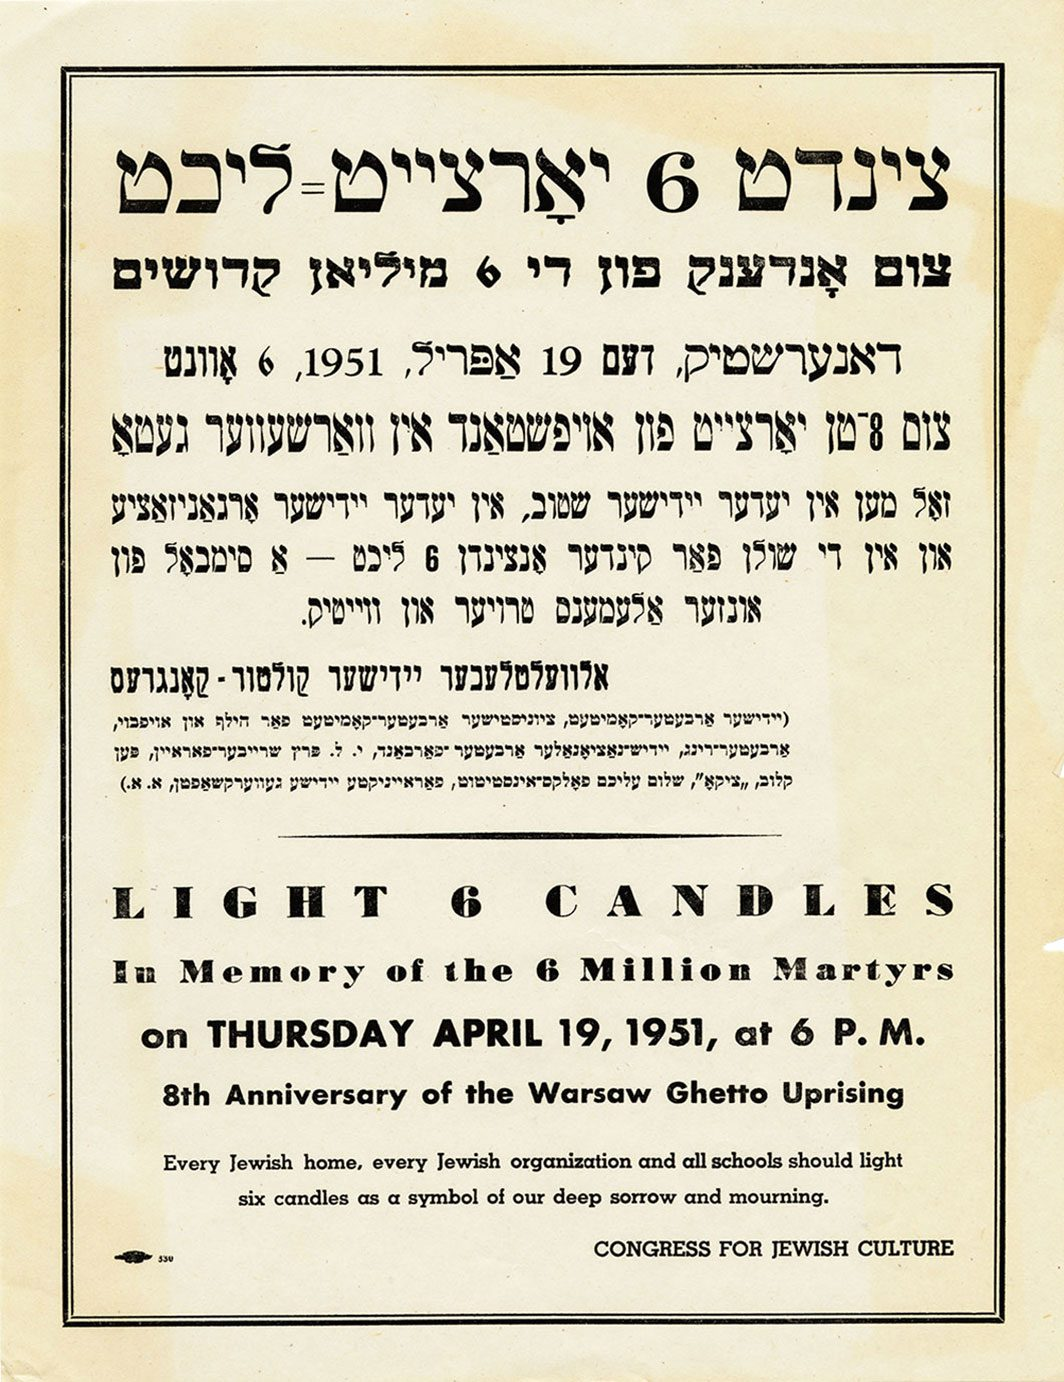 Poster in Yiddish and English for a Warsaw Ghetto Uprising memorial